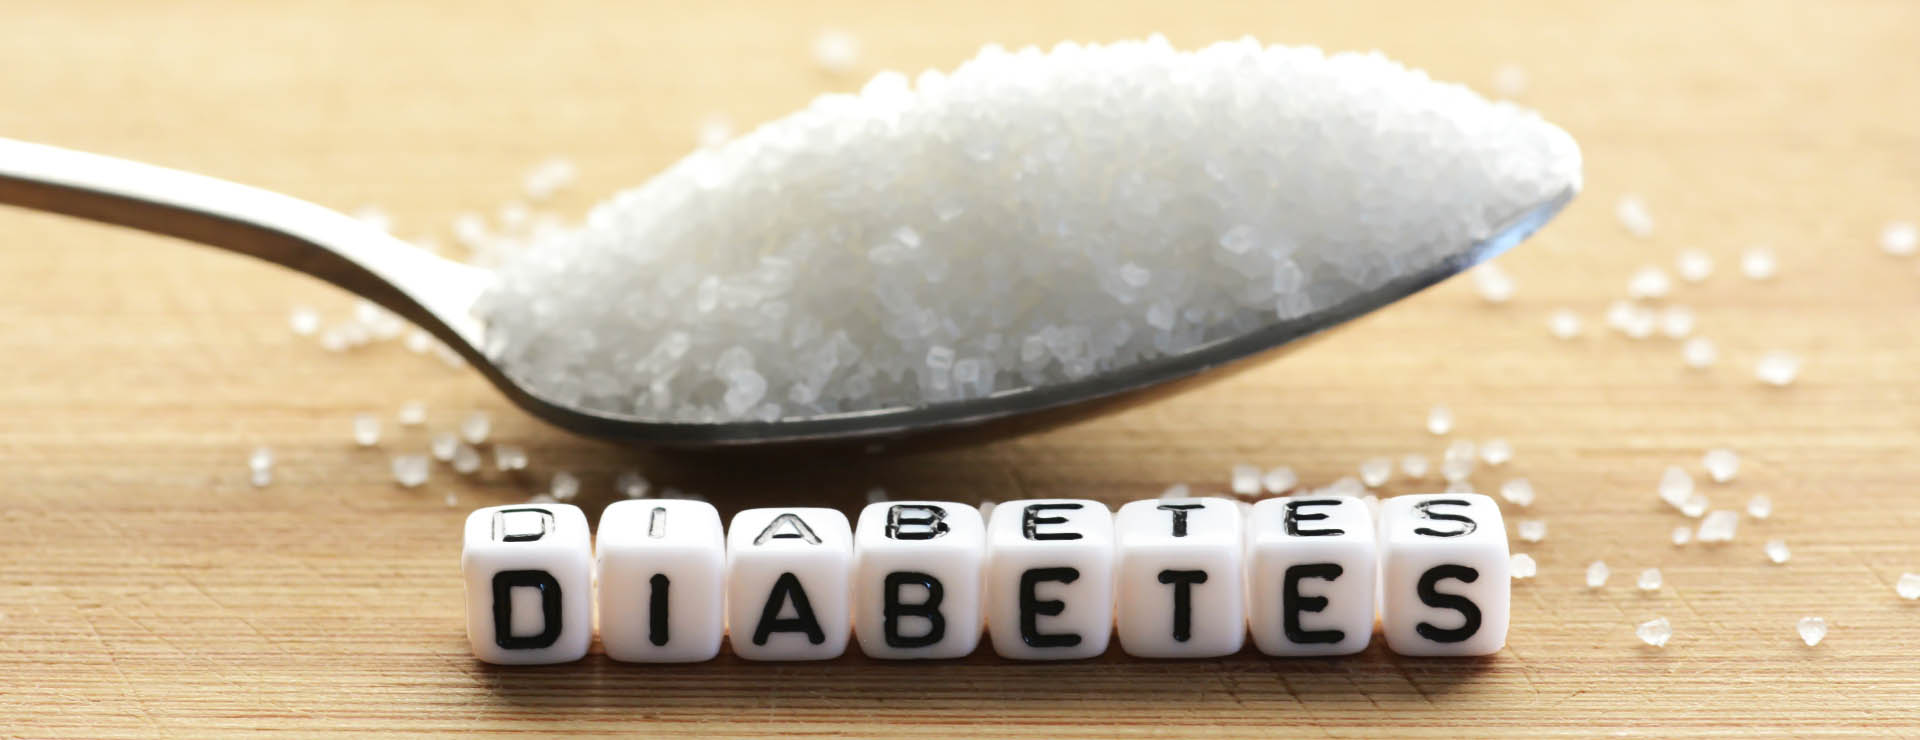 Diabetes is a deadly and chronic condition